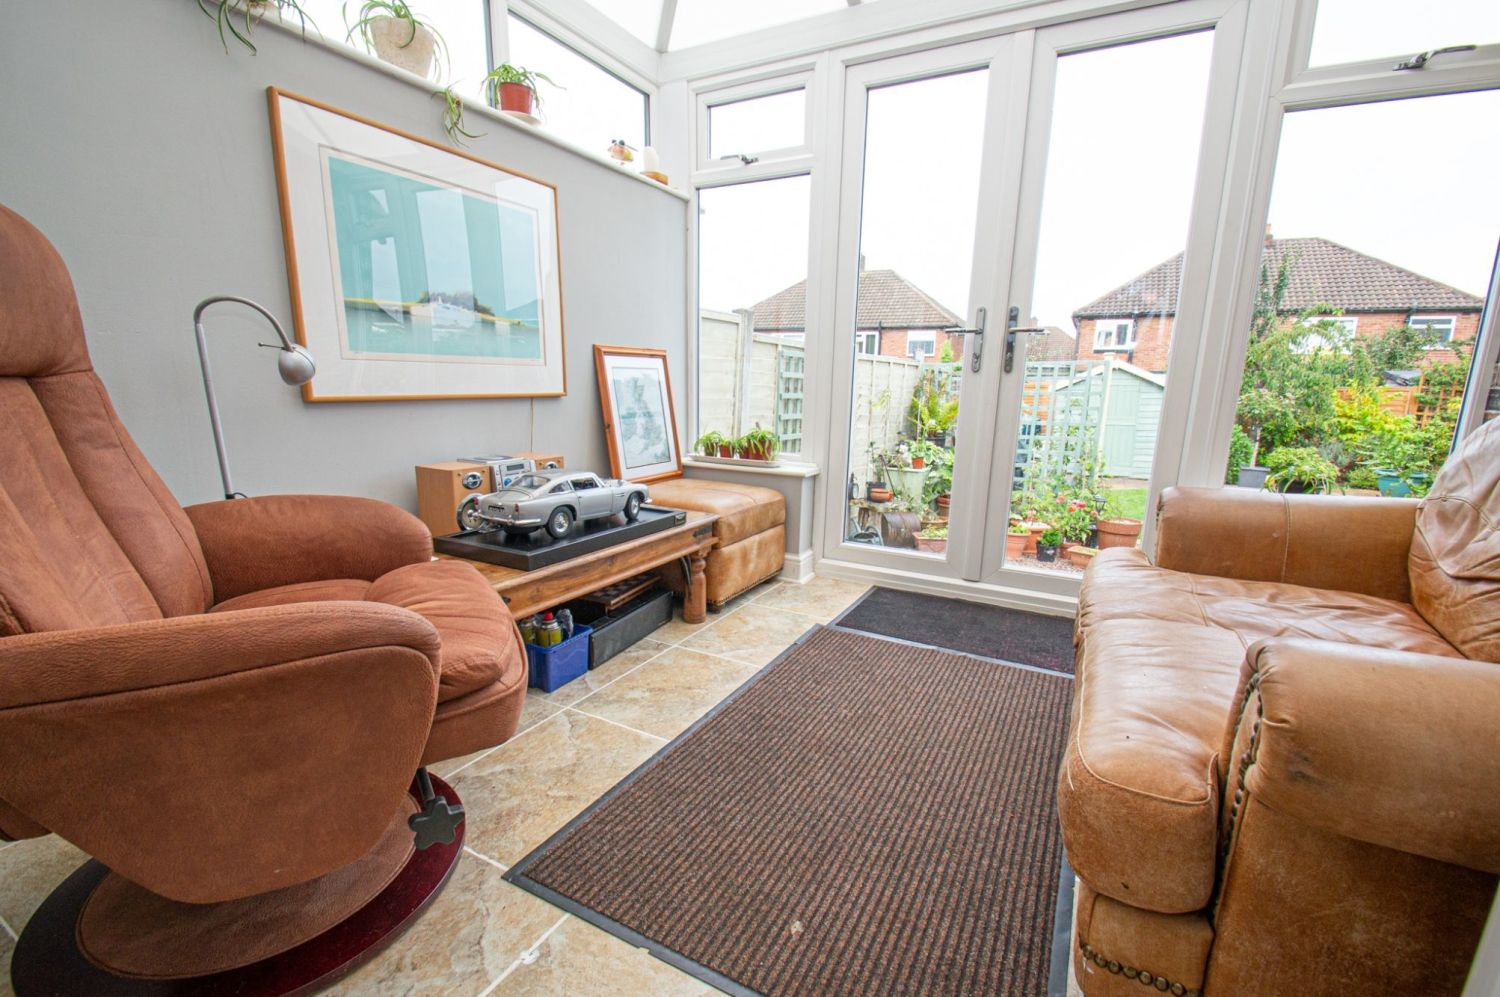 4 bed semi-detached for sale in Wheatcroft Close, Halesowen 8